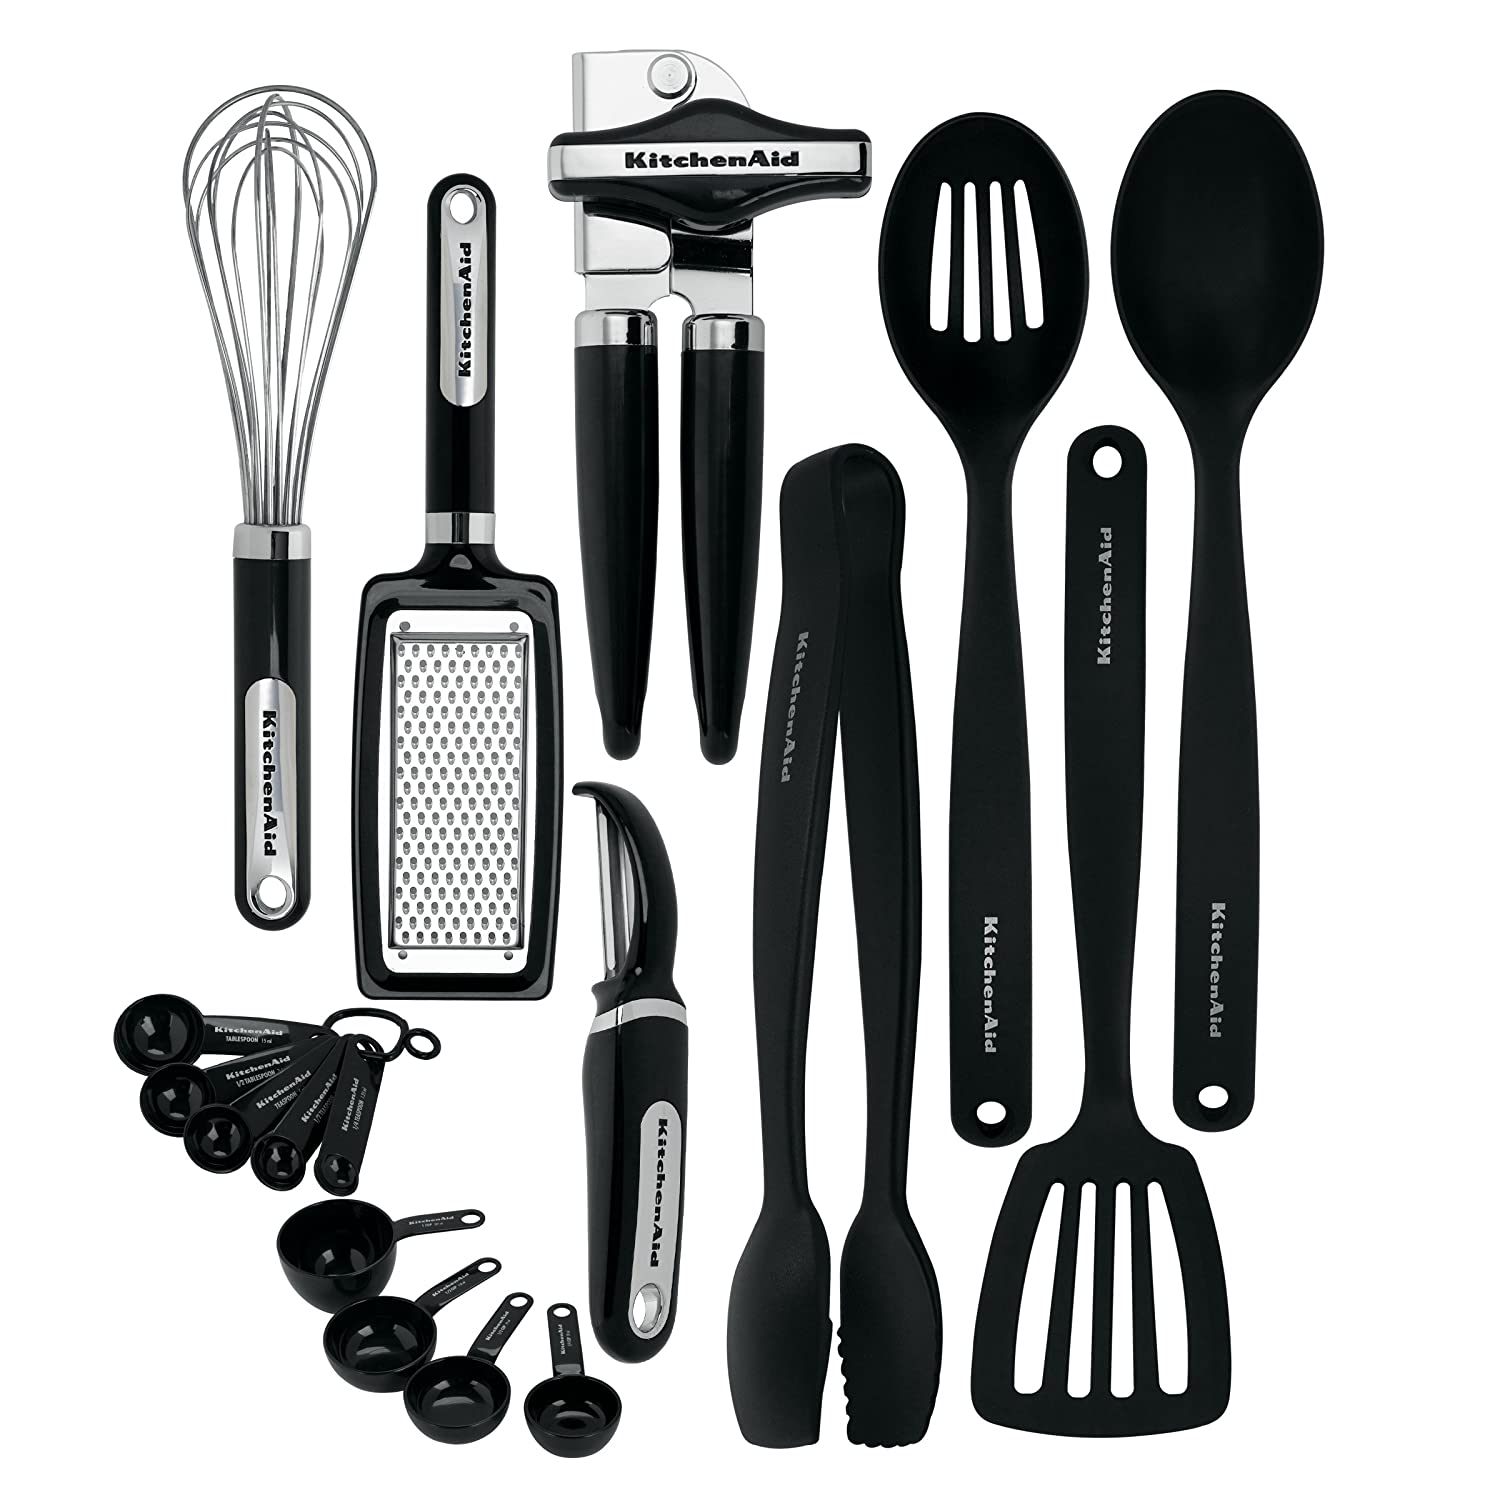 Culinary ToolsConfession